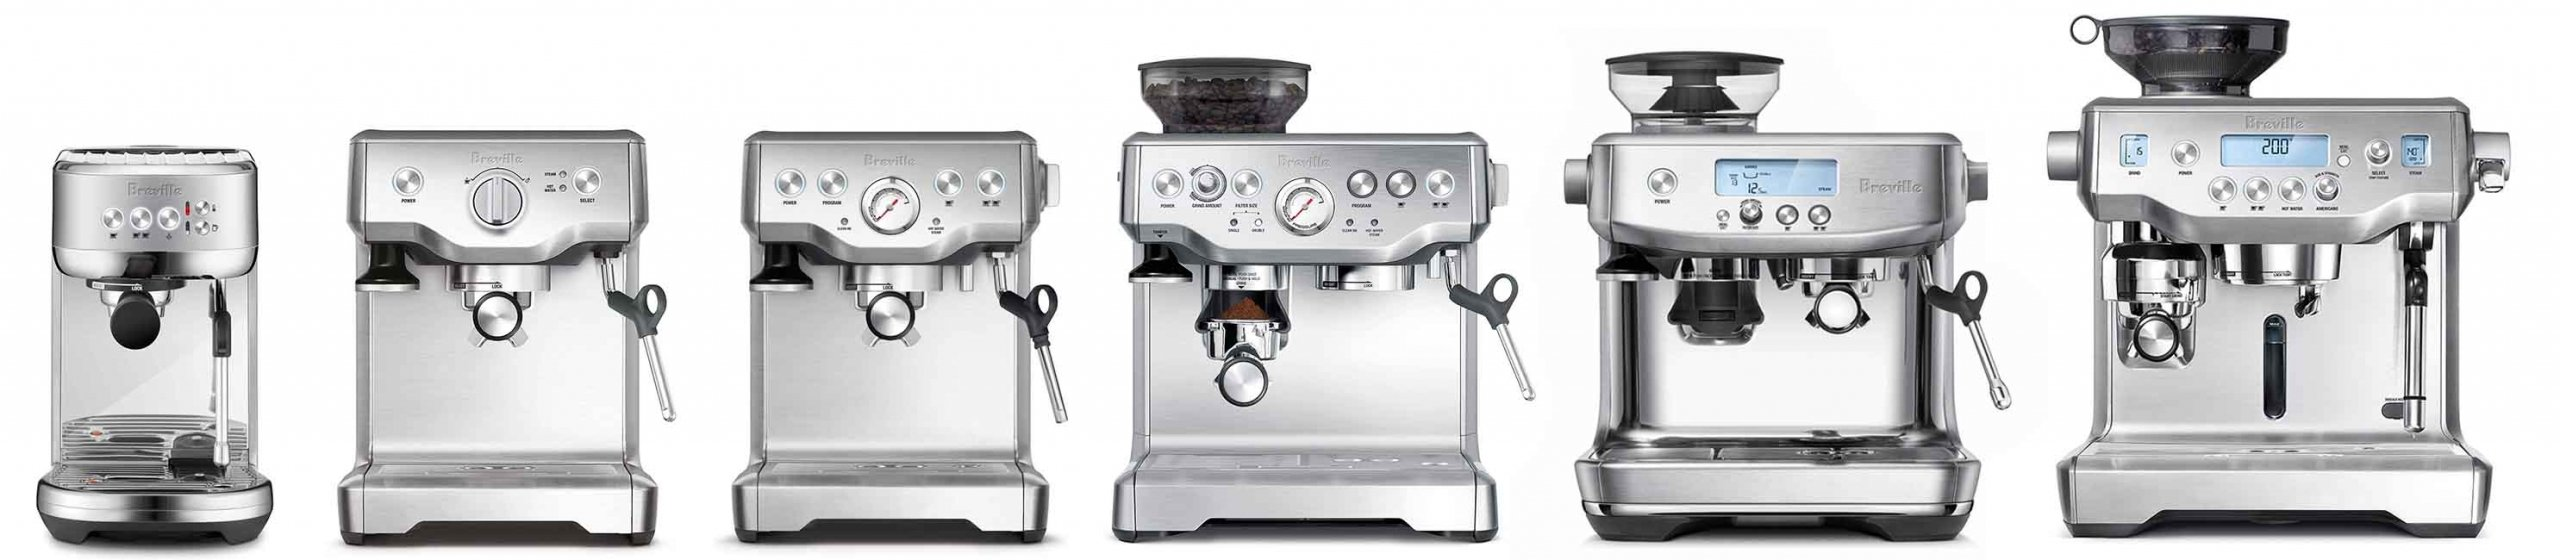 which breville espresso machine is best?